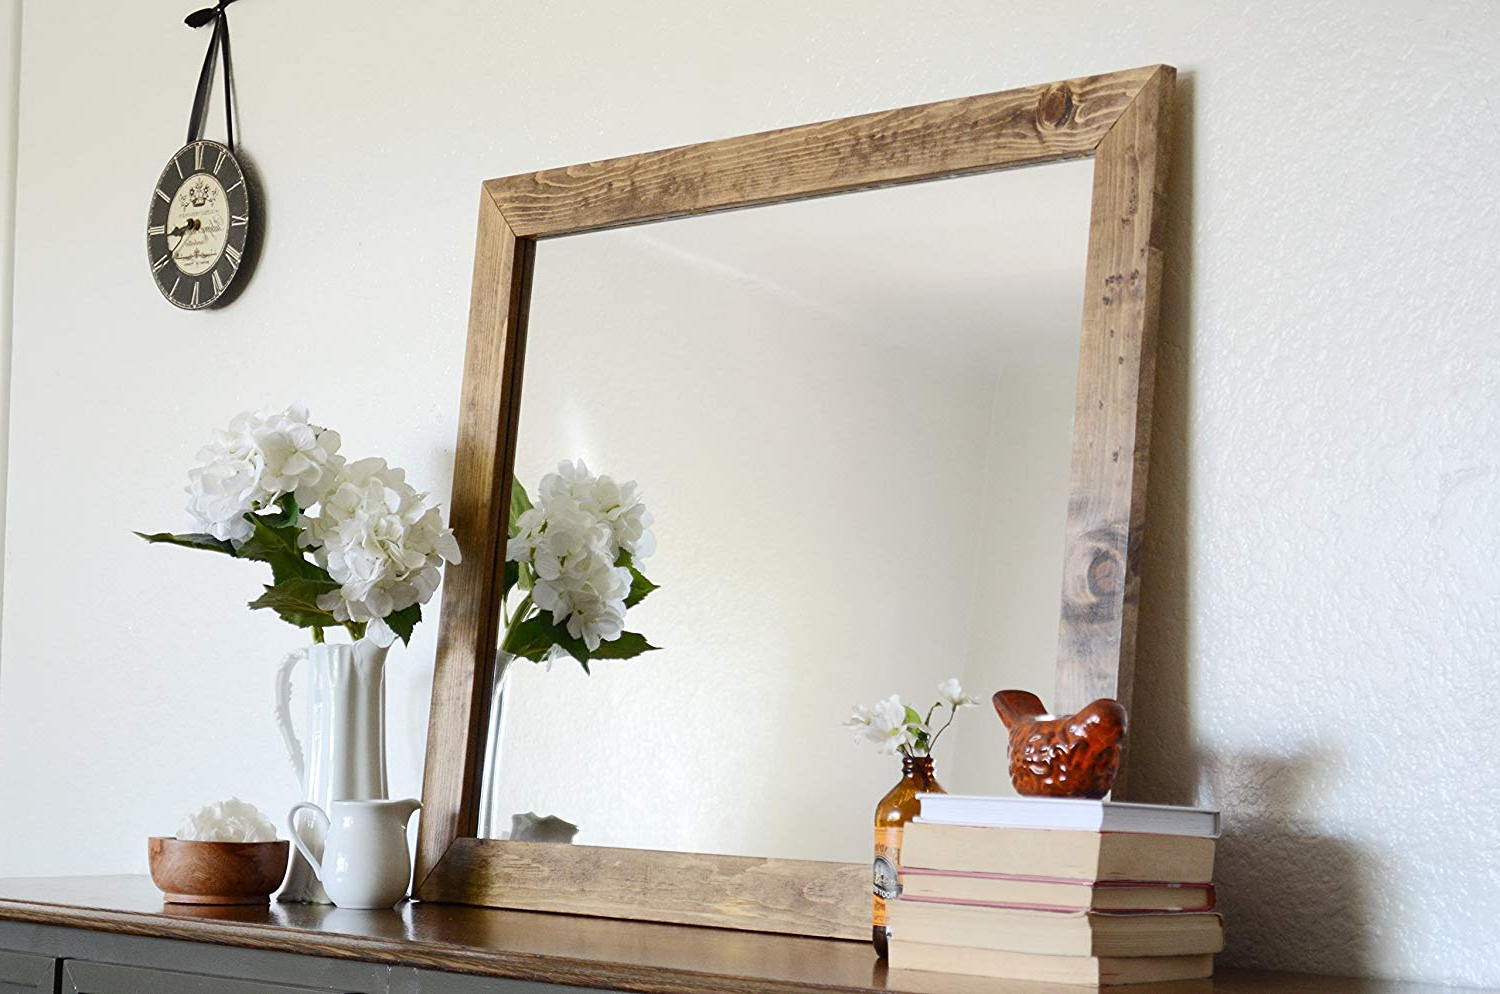 Most Recent Rustic Wooden Wall Mirror Throughout Rustic Wood Wall Mirrors (View 4 of 20)